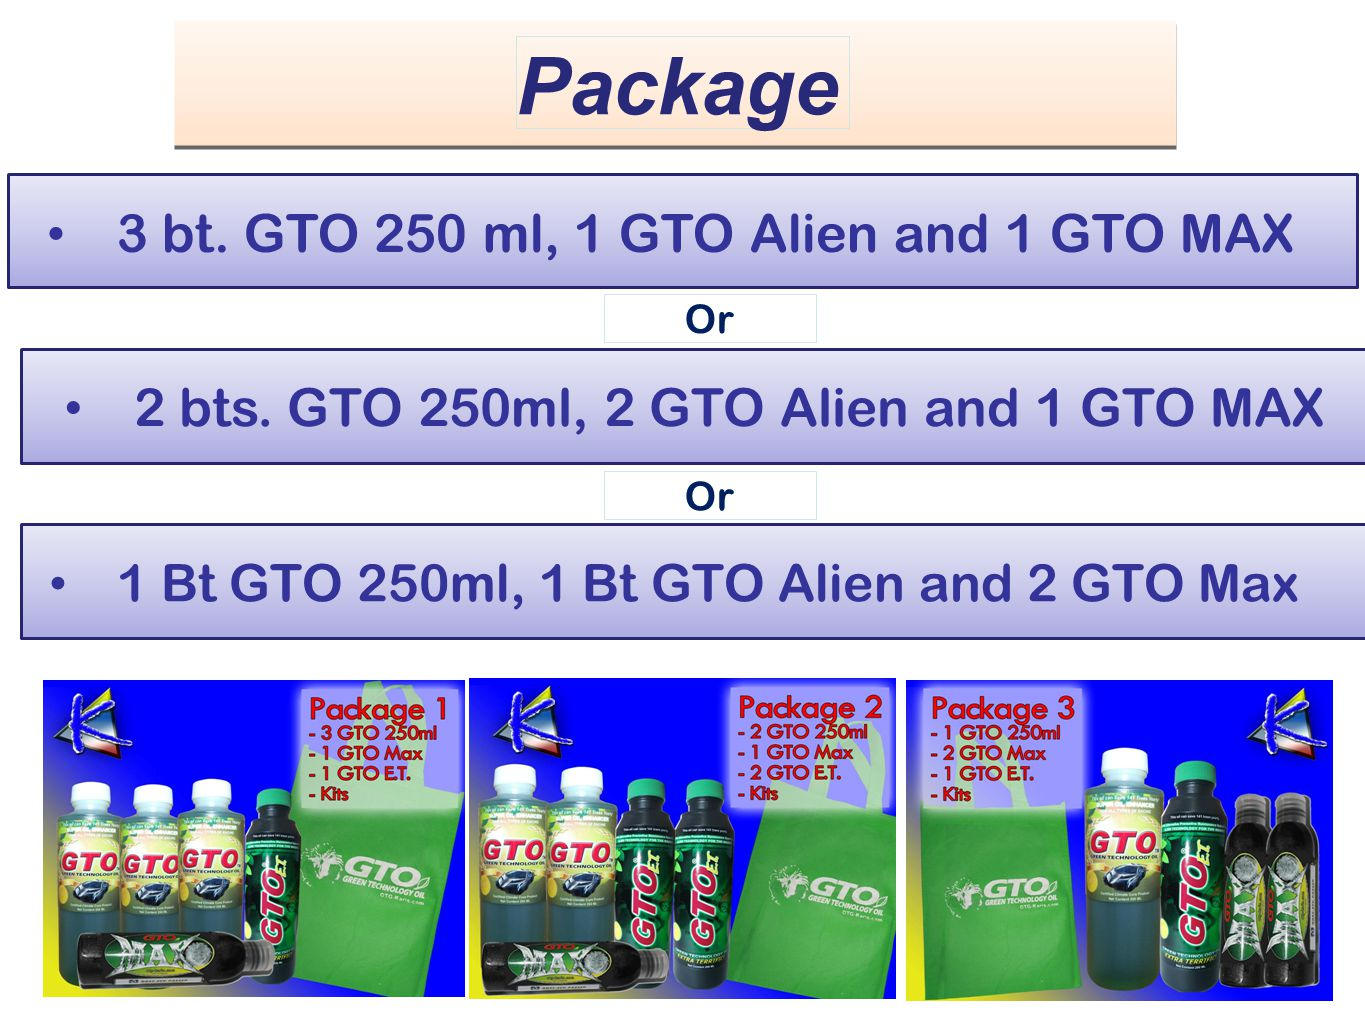 1 Bt GTO 250ml, 1 Bt GTO Alien and 2 GTO Max 3 bt.